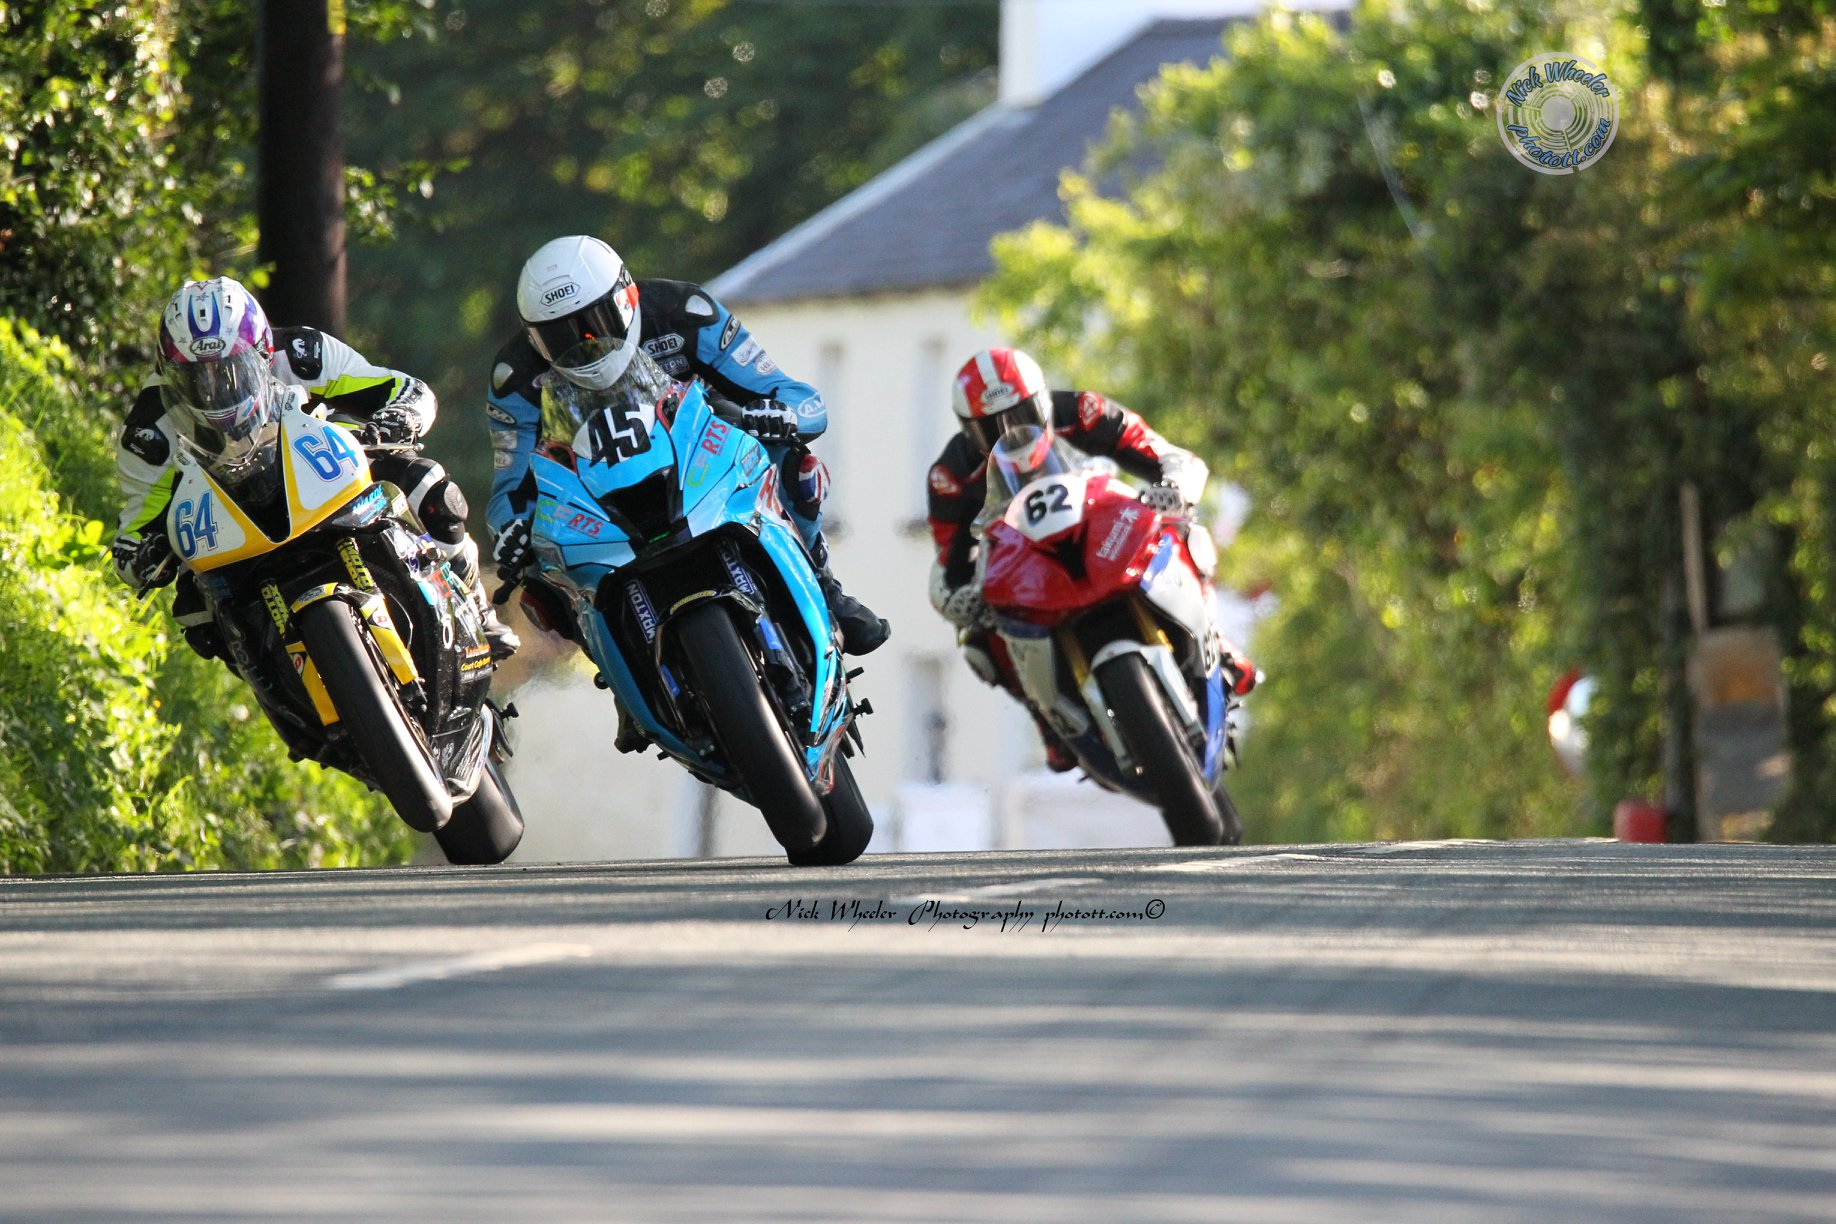 TT 2022 Latest: New ZX10RR Opportunity Beckons For Cheshire's Perry